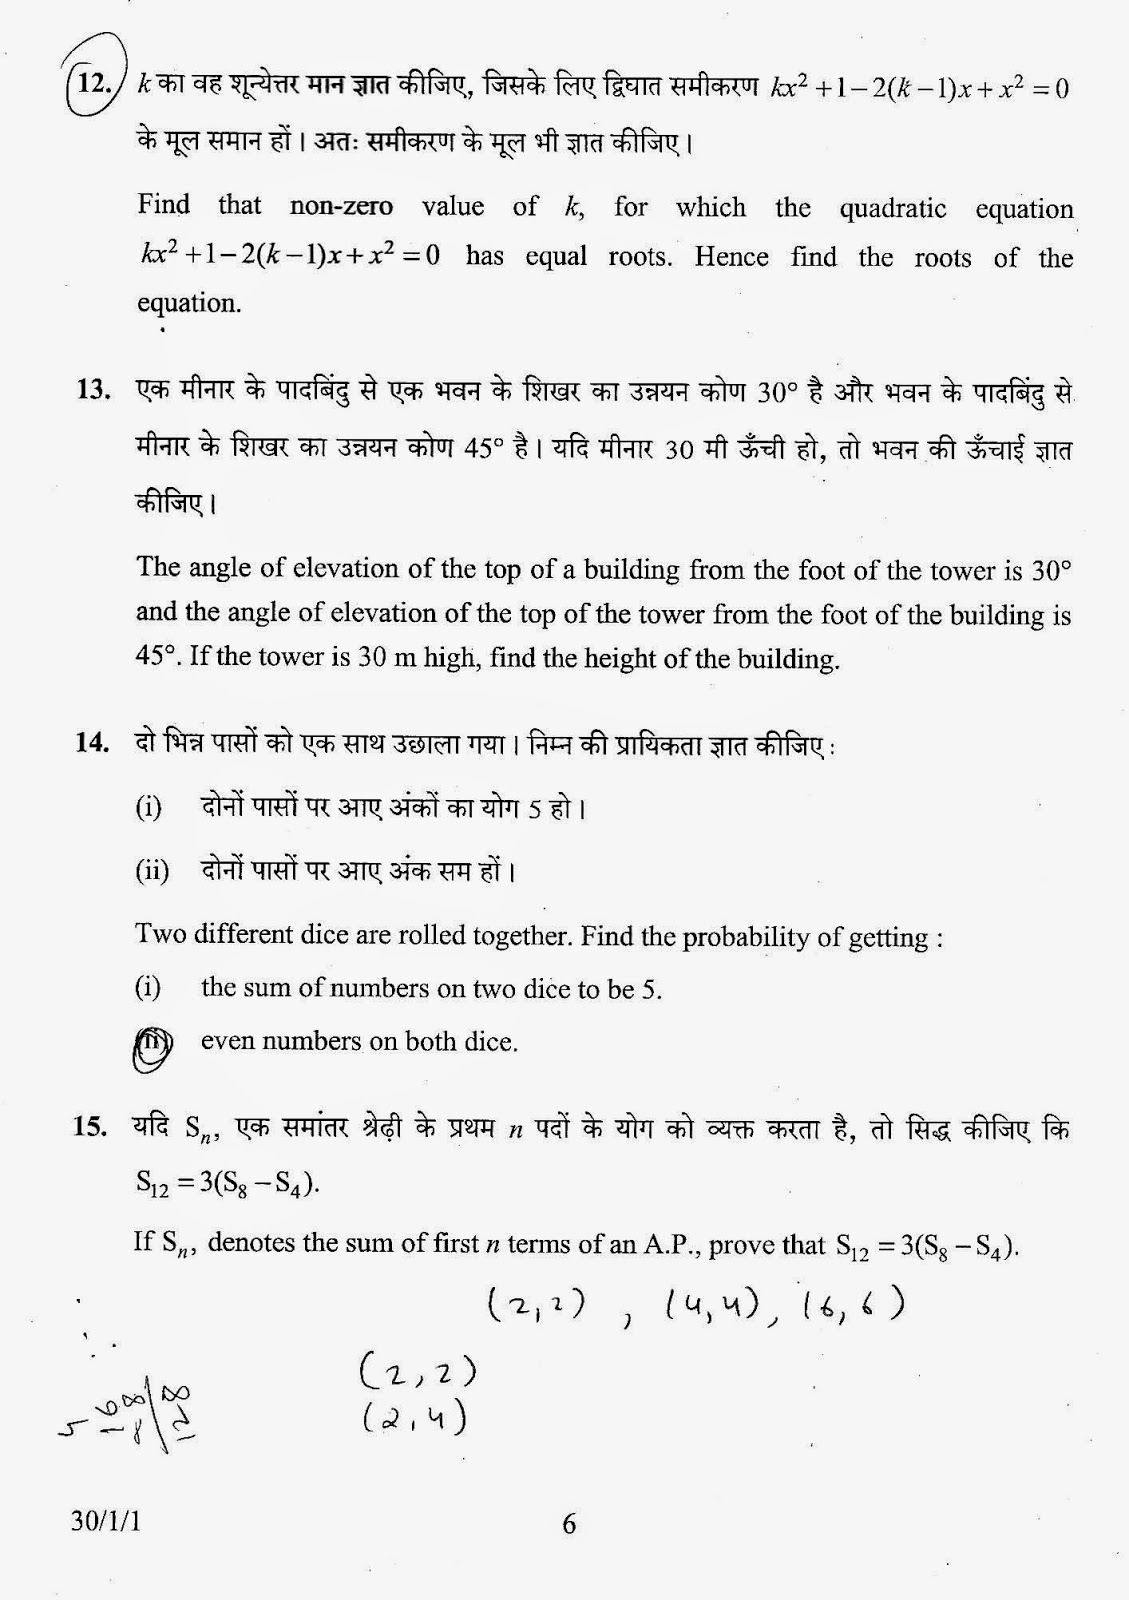 Maths4all Class X Mathematics Cbse Board Paper Code No 30 1 1 Series Rhl 1 Set 1 15